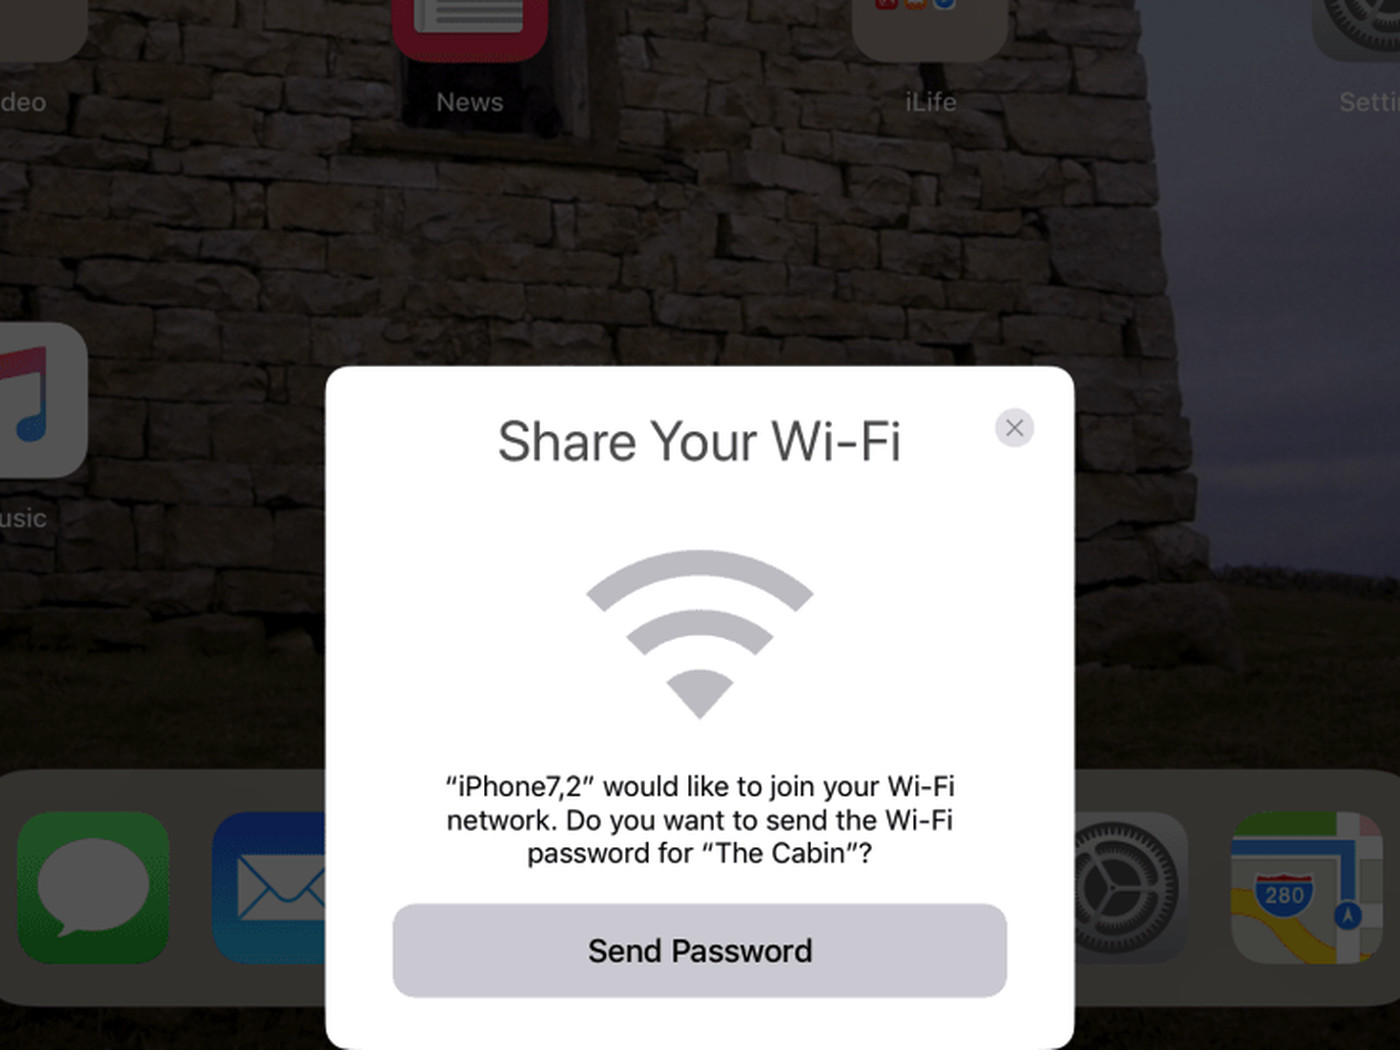 iOS 11 Makes Sharing Your Wi-Fi Password Much Easier